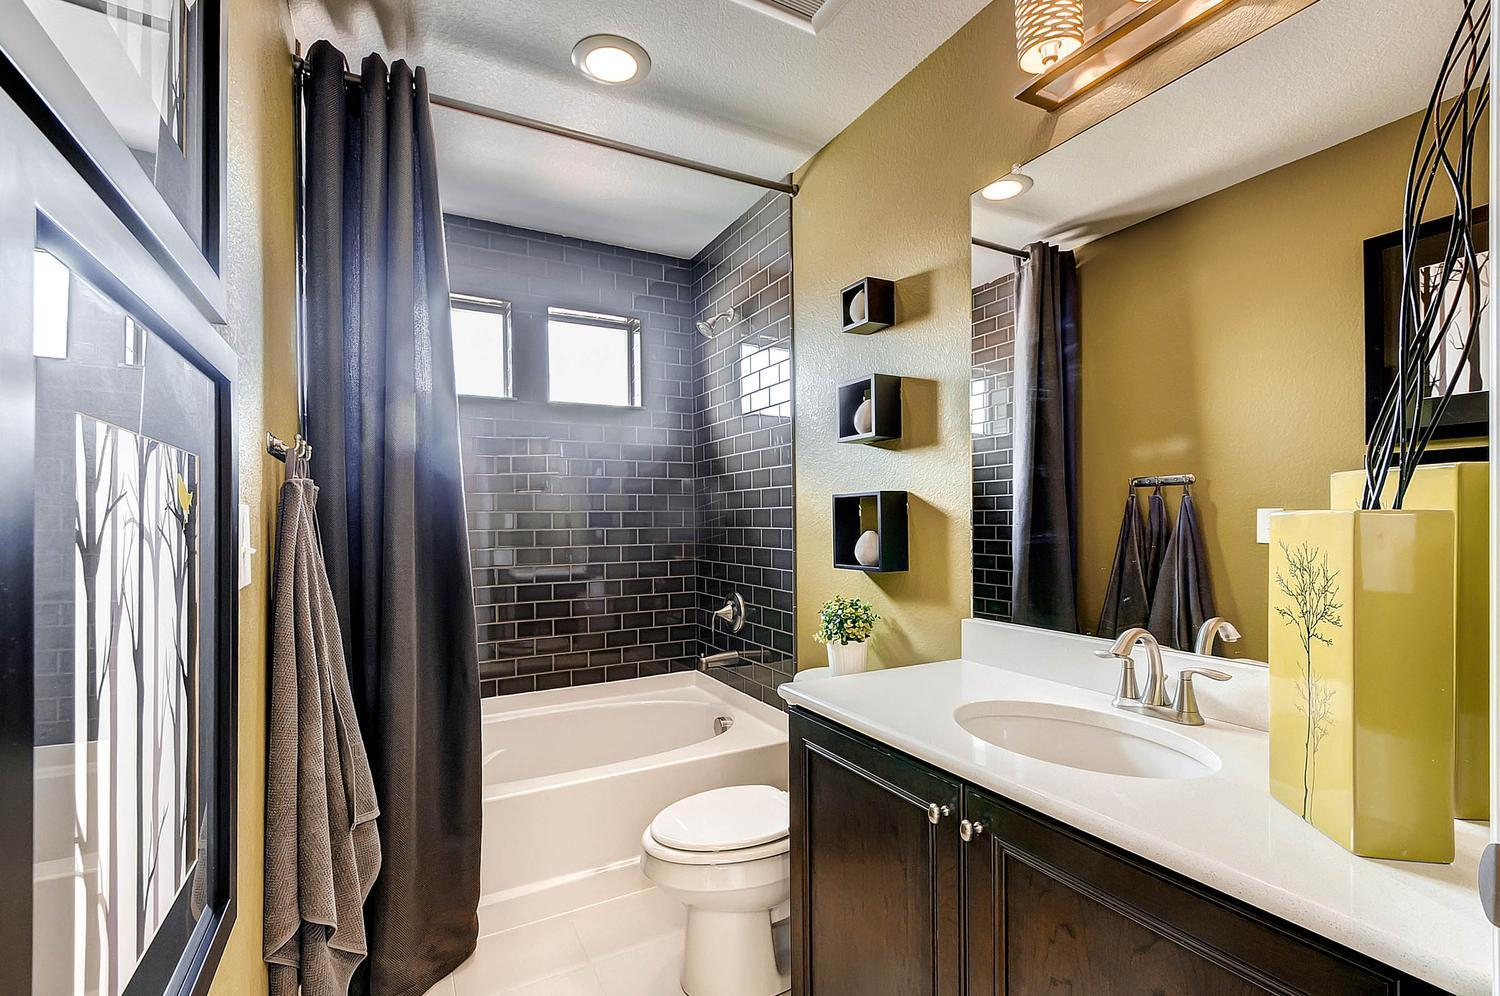 Bathroom featured in the Yampa By Oakwood Homes Colorado in Fort Collins-Loveland, CO